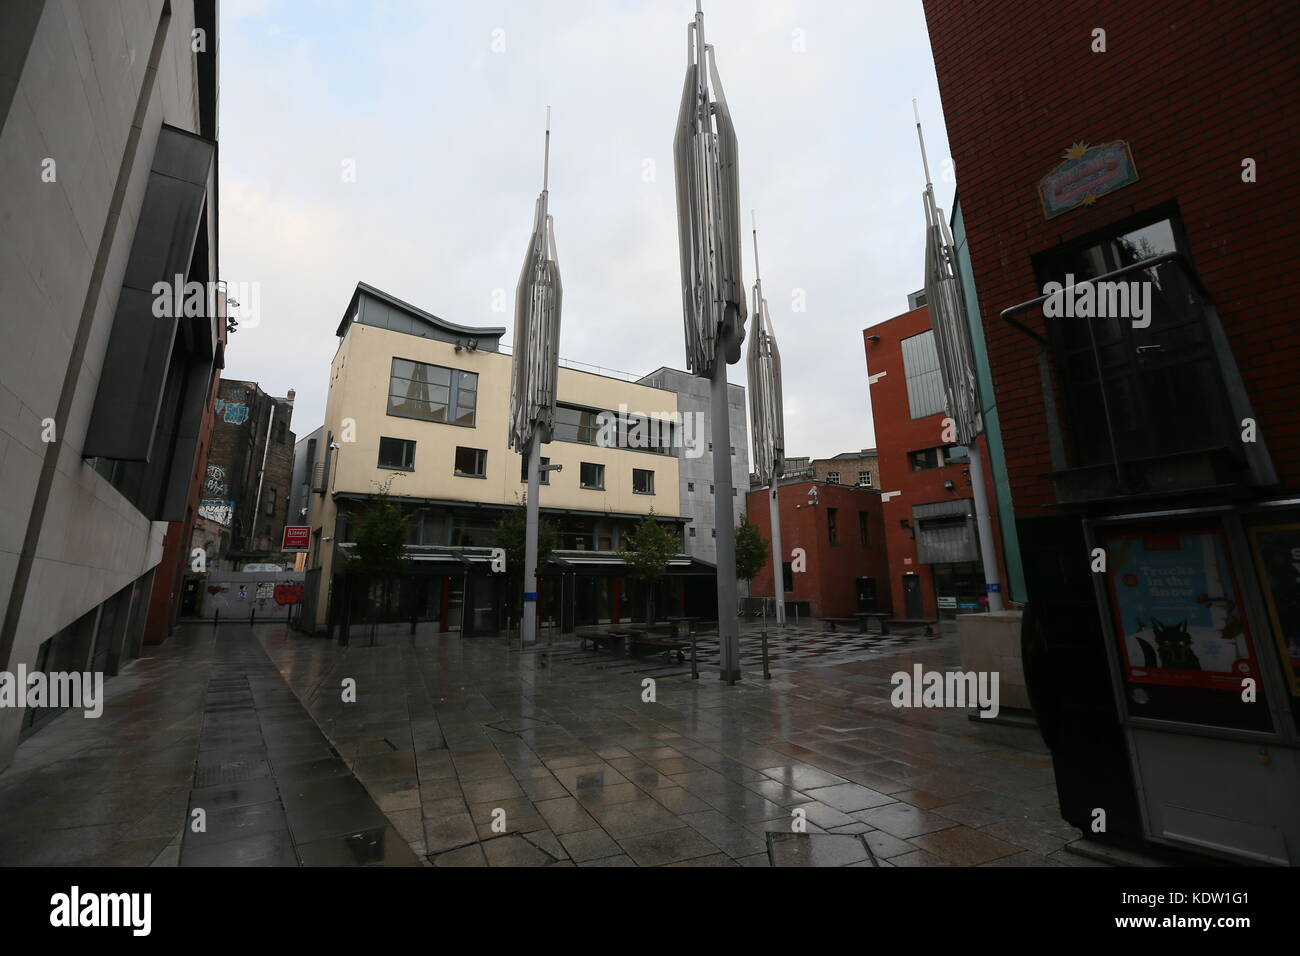 Dublin, Ireland. 16th Oct, 2017. Meeting House Square in Dublin's Temple Bar deserted. Image from Dublin, Ireland - Stock Image